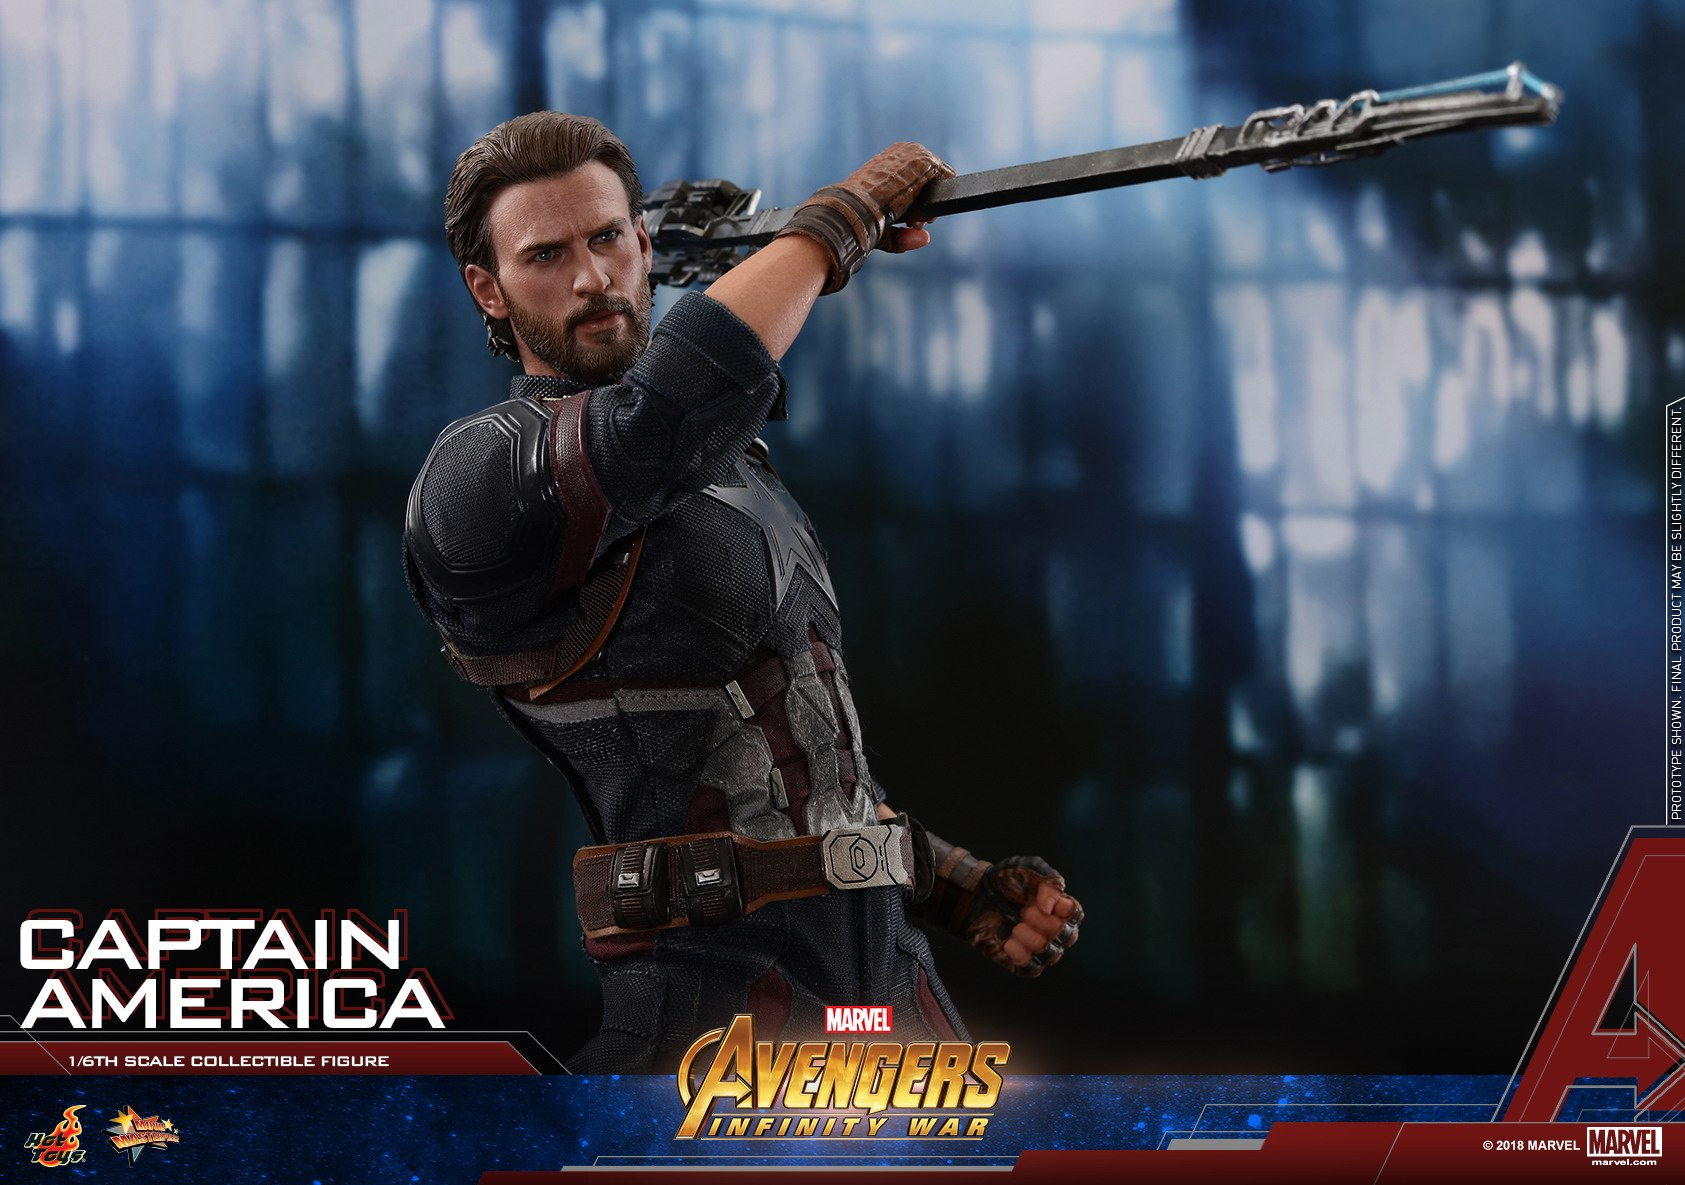 Hot-Toys-AIW-Captain-America-collectible-figure_Mystery-Weaspon_PR02.jpg